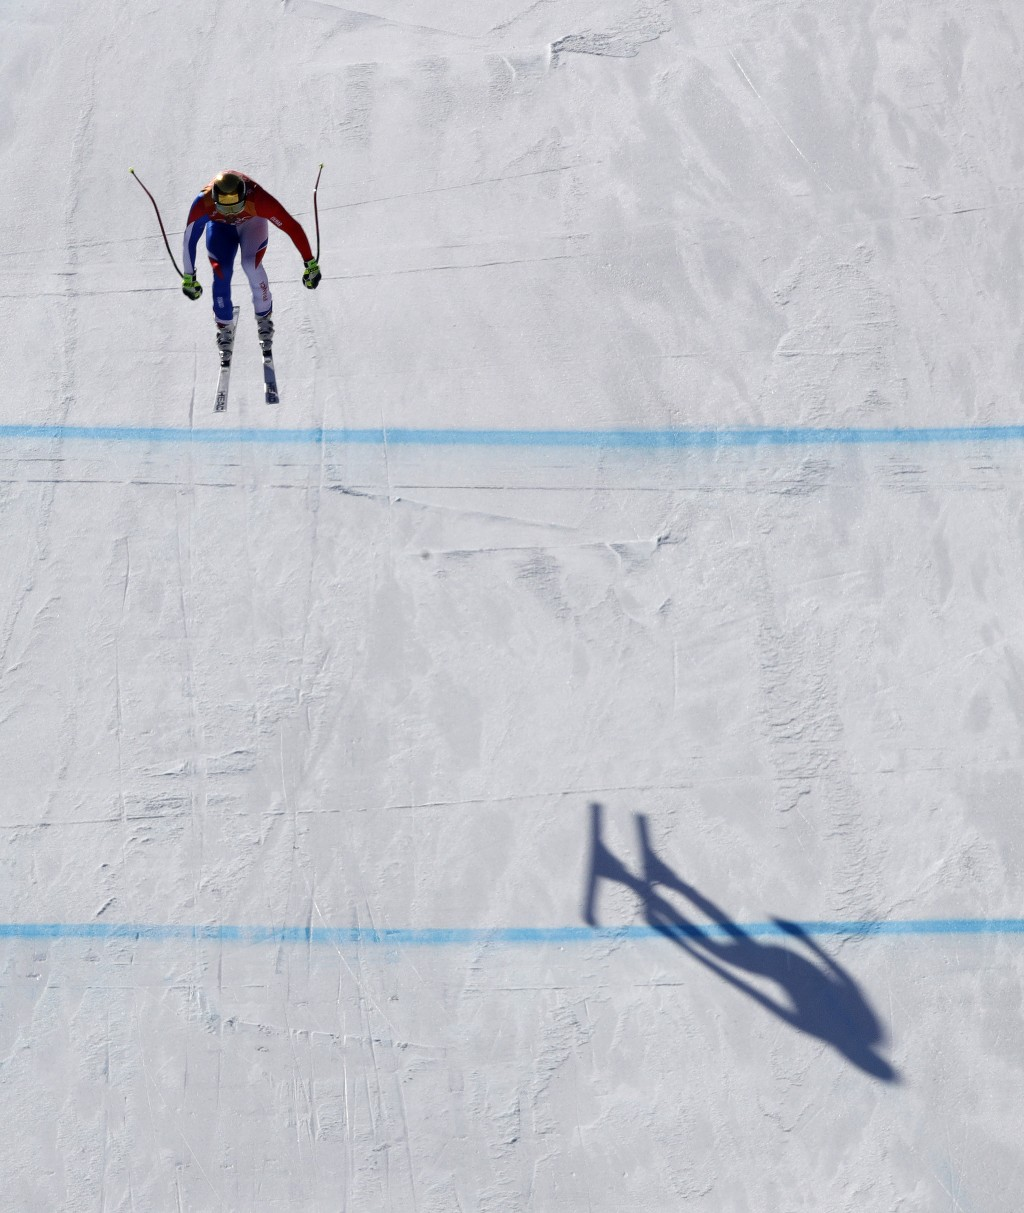 France's AdrienTheaux competes in the men's downhill at the 2018 Winter Olympics in Jeongseon, South Korea, Thursday, Feb. 15, 2018. (AP Photo/Charli